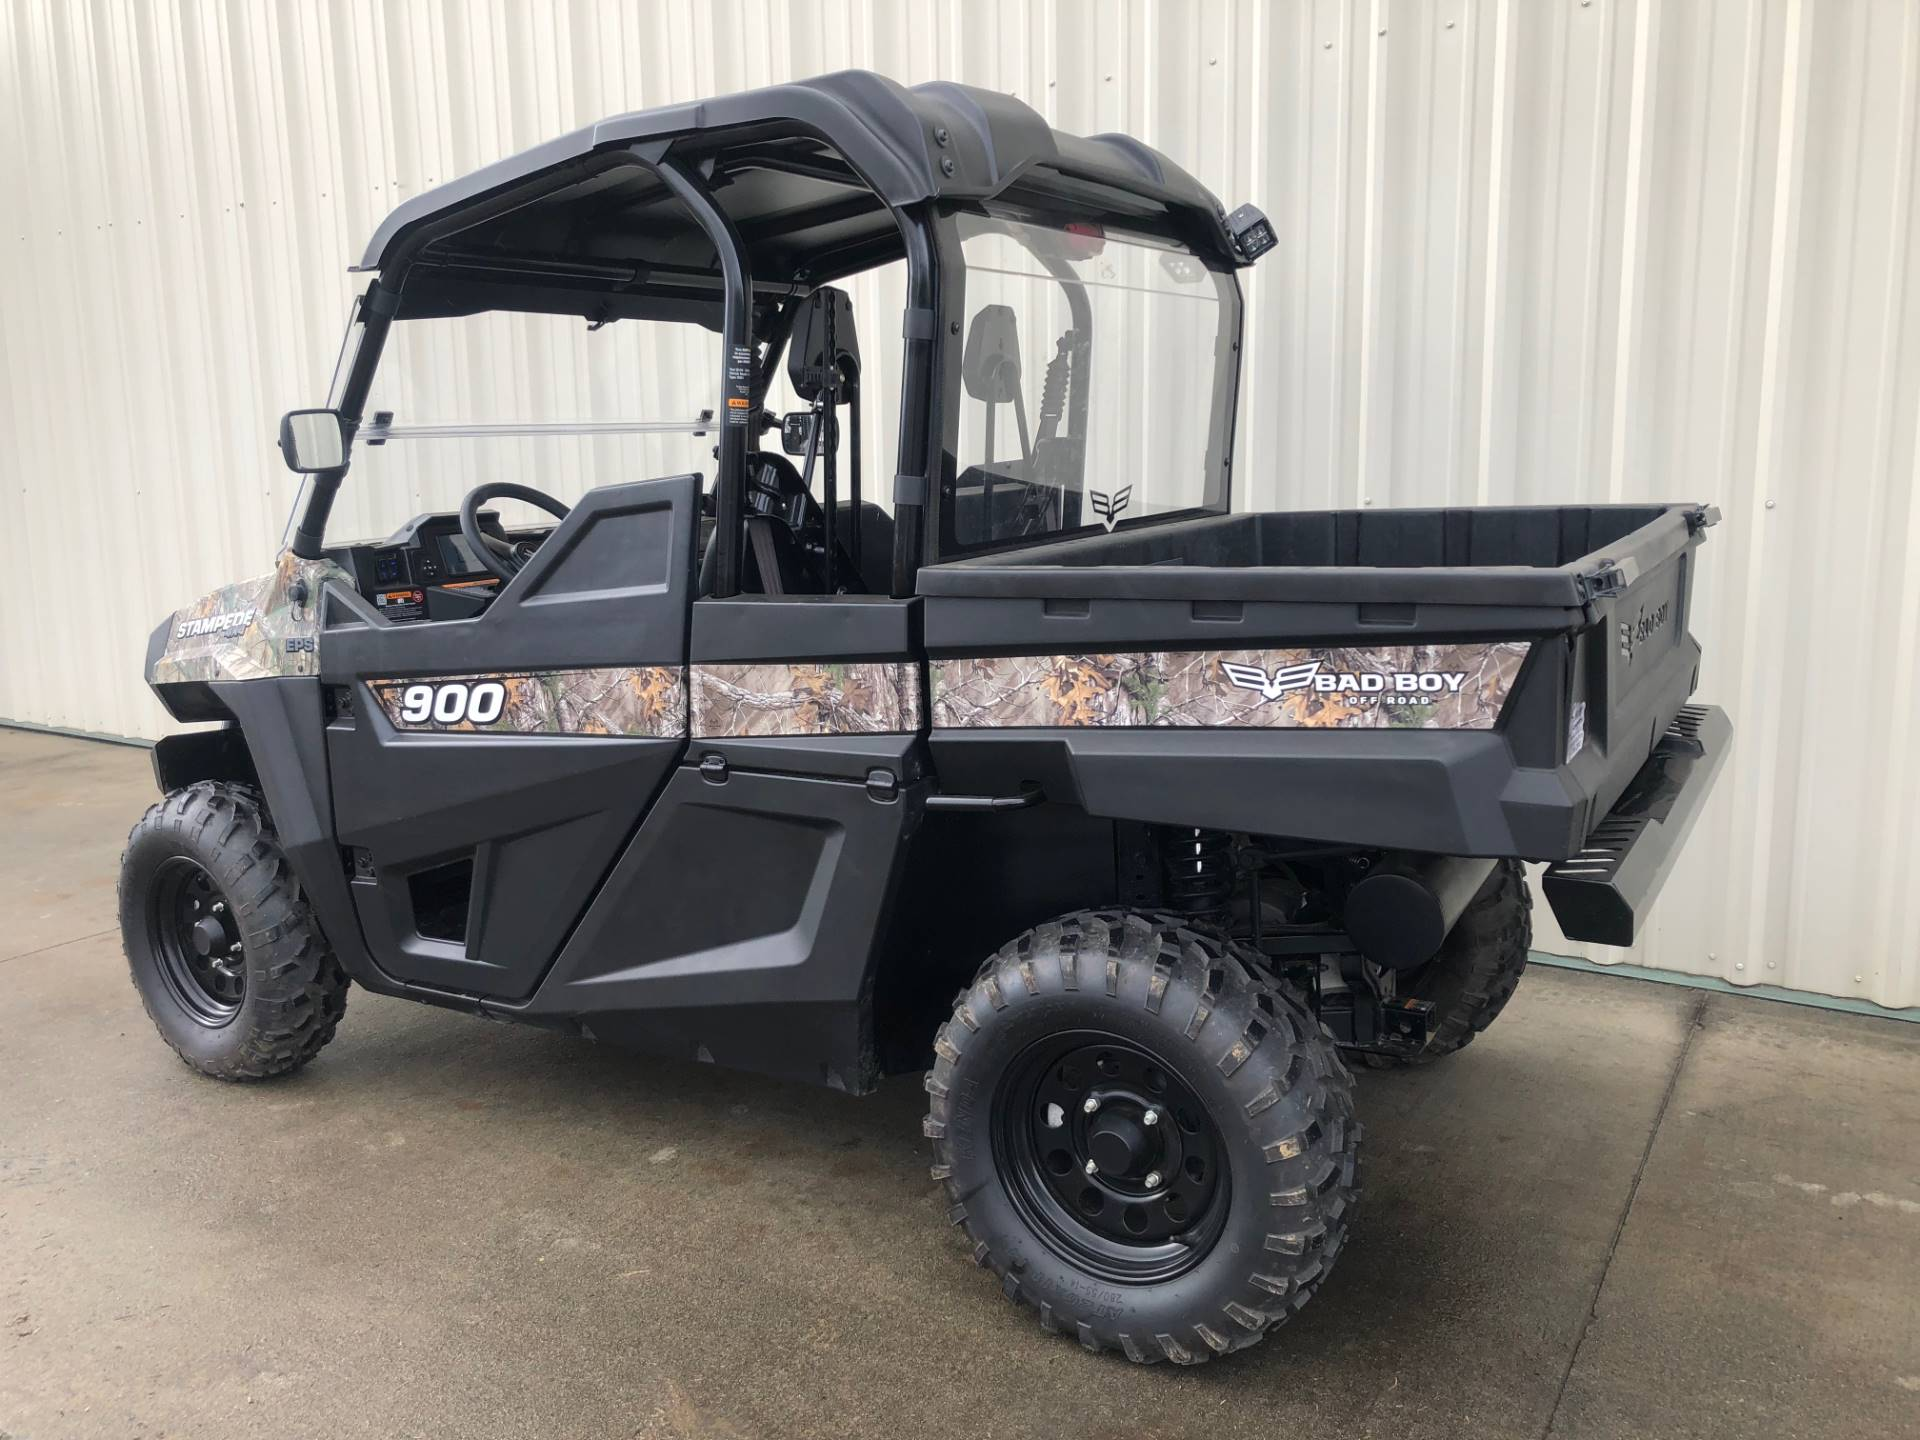 2017 Bad Boy Off Road STAMPEDE 900 4X4 EPS (GAS) in Tifton, Georgia